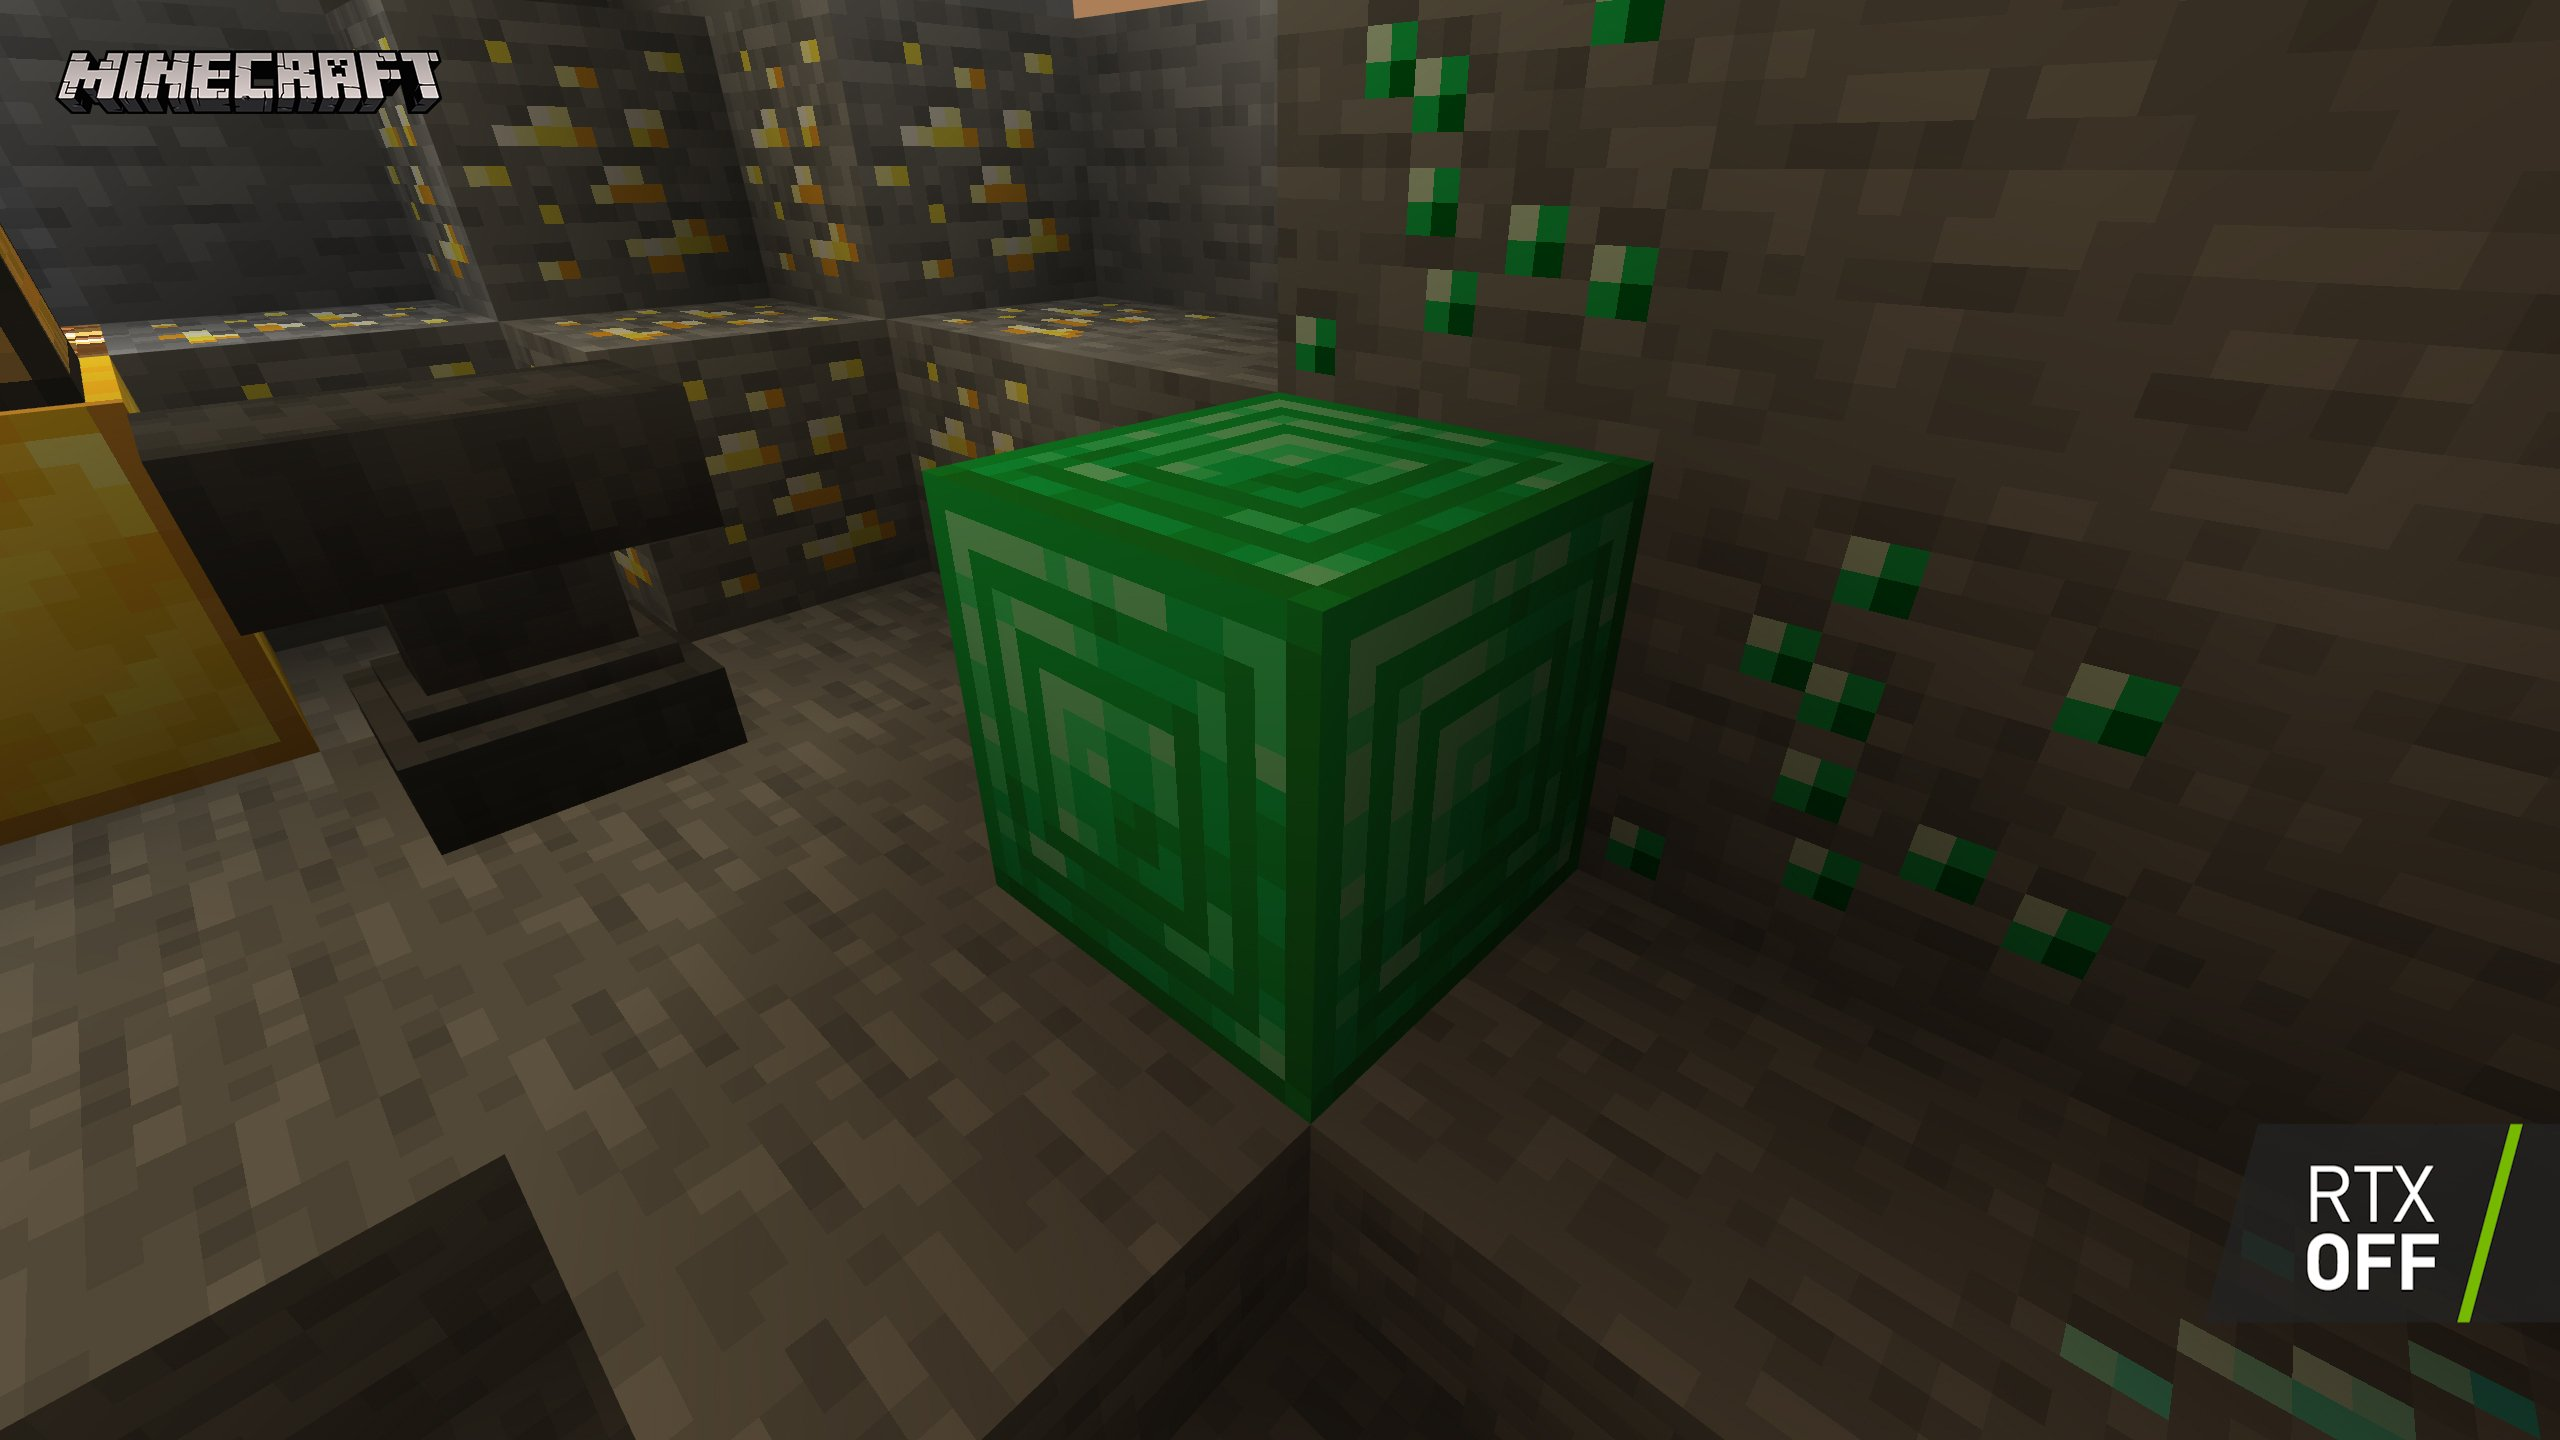 minecraft with rtx beta crystal palace emissive blocks 001 rtx off